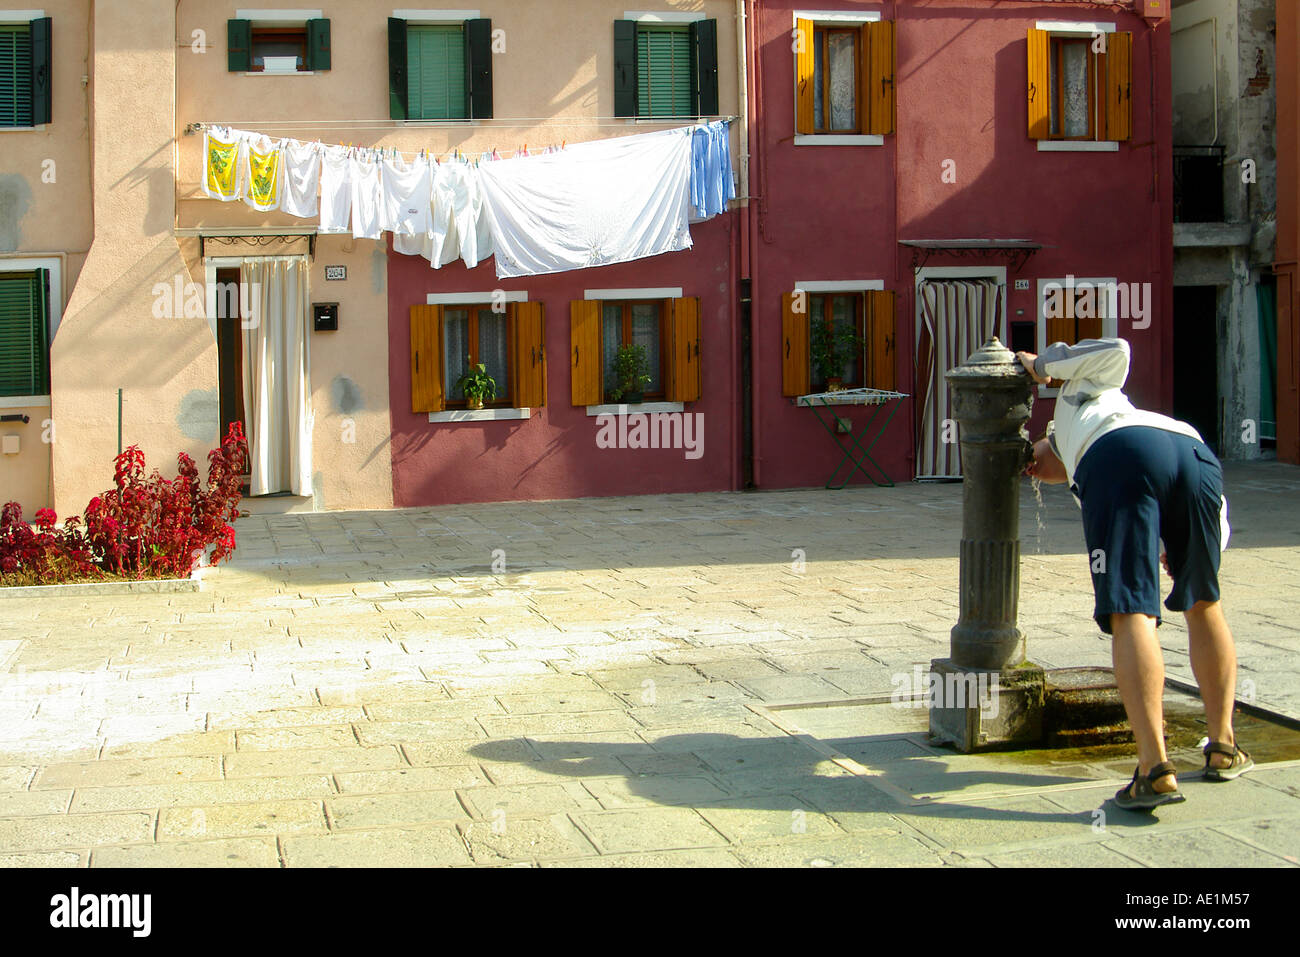 A line of laundry against coloured houses man drinking from water tap - Stock Image